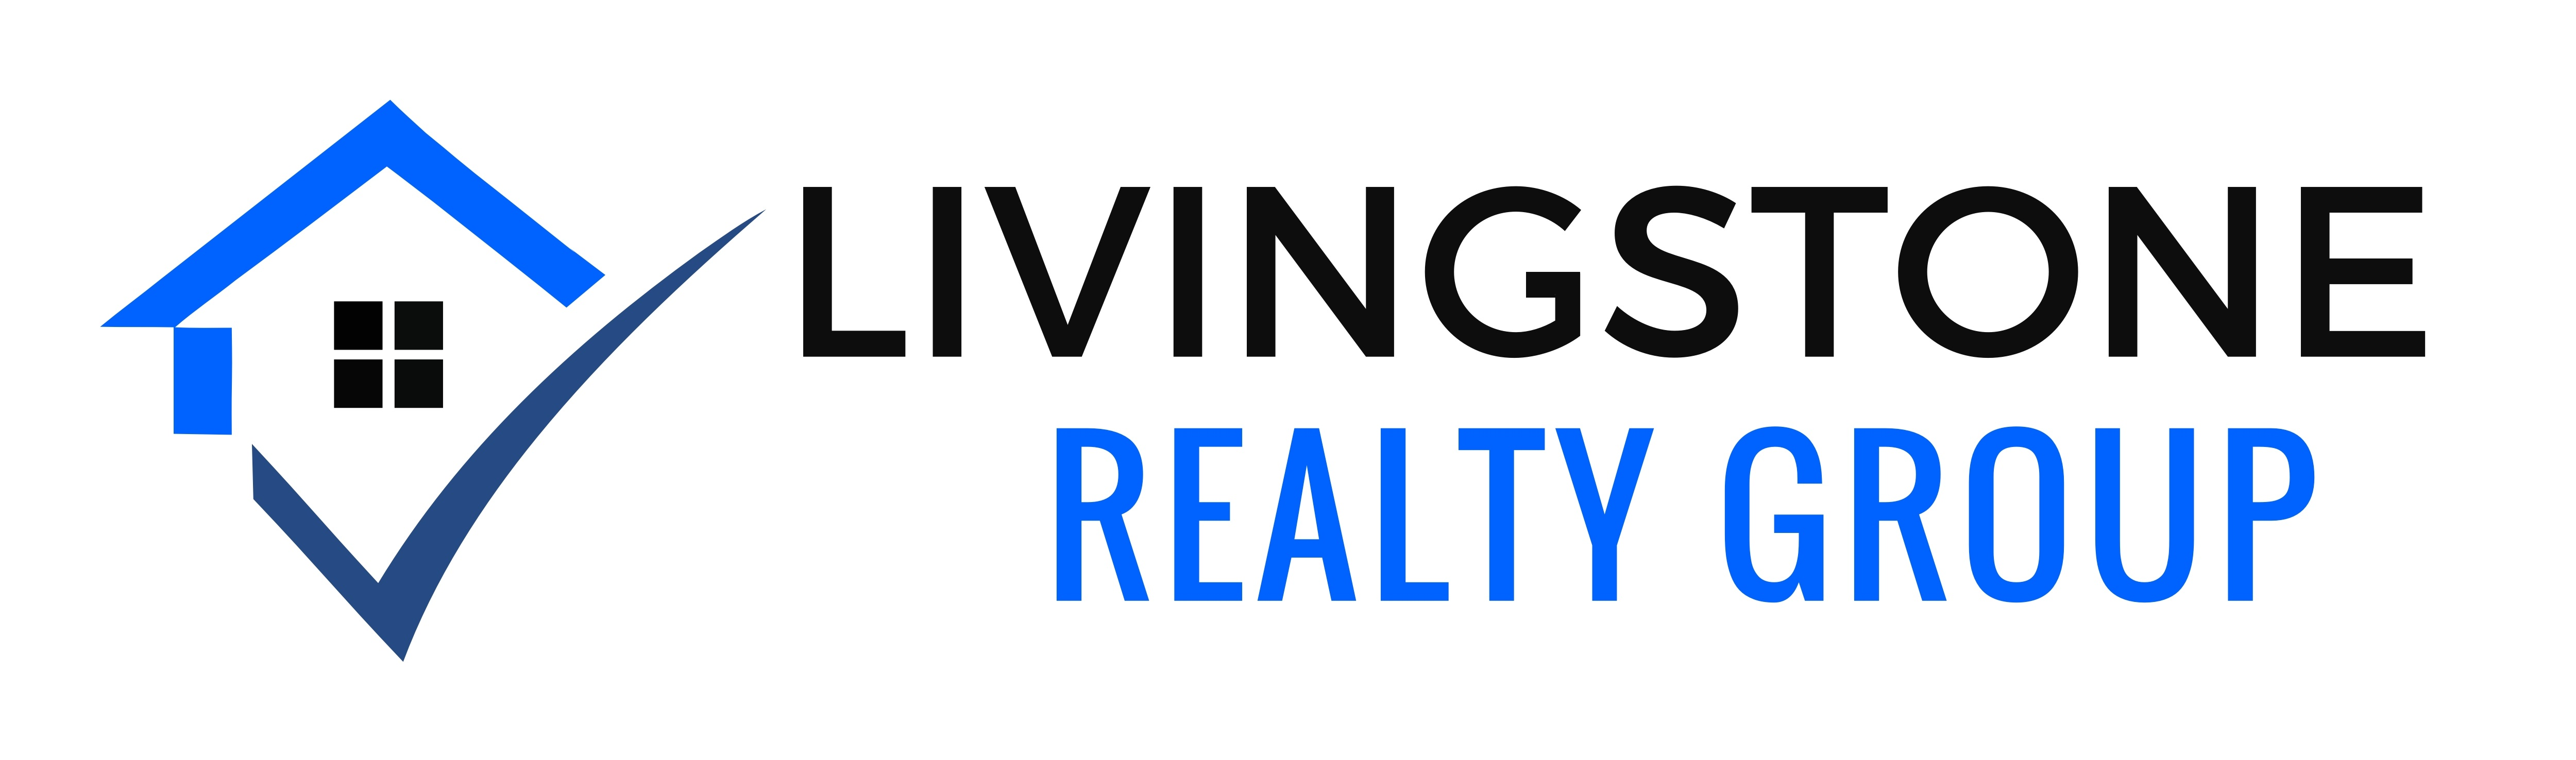 Livingstone Realty Group